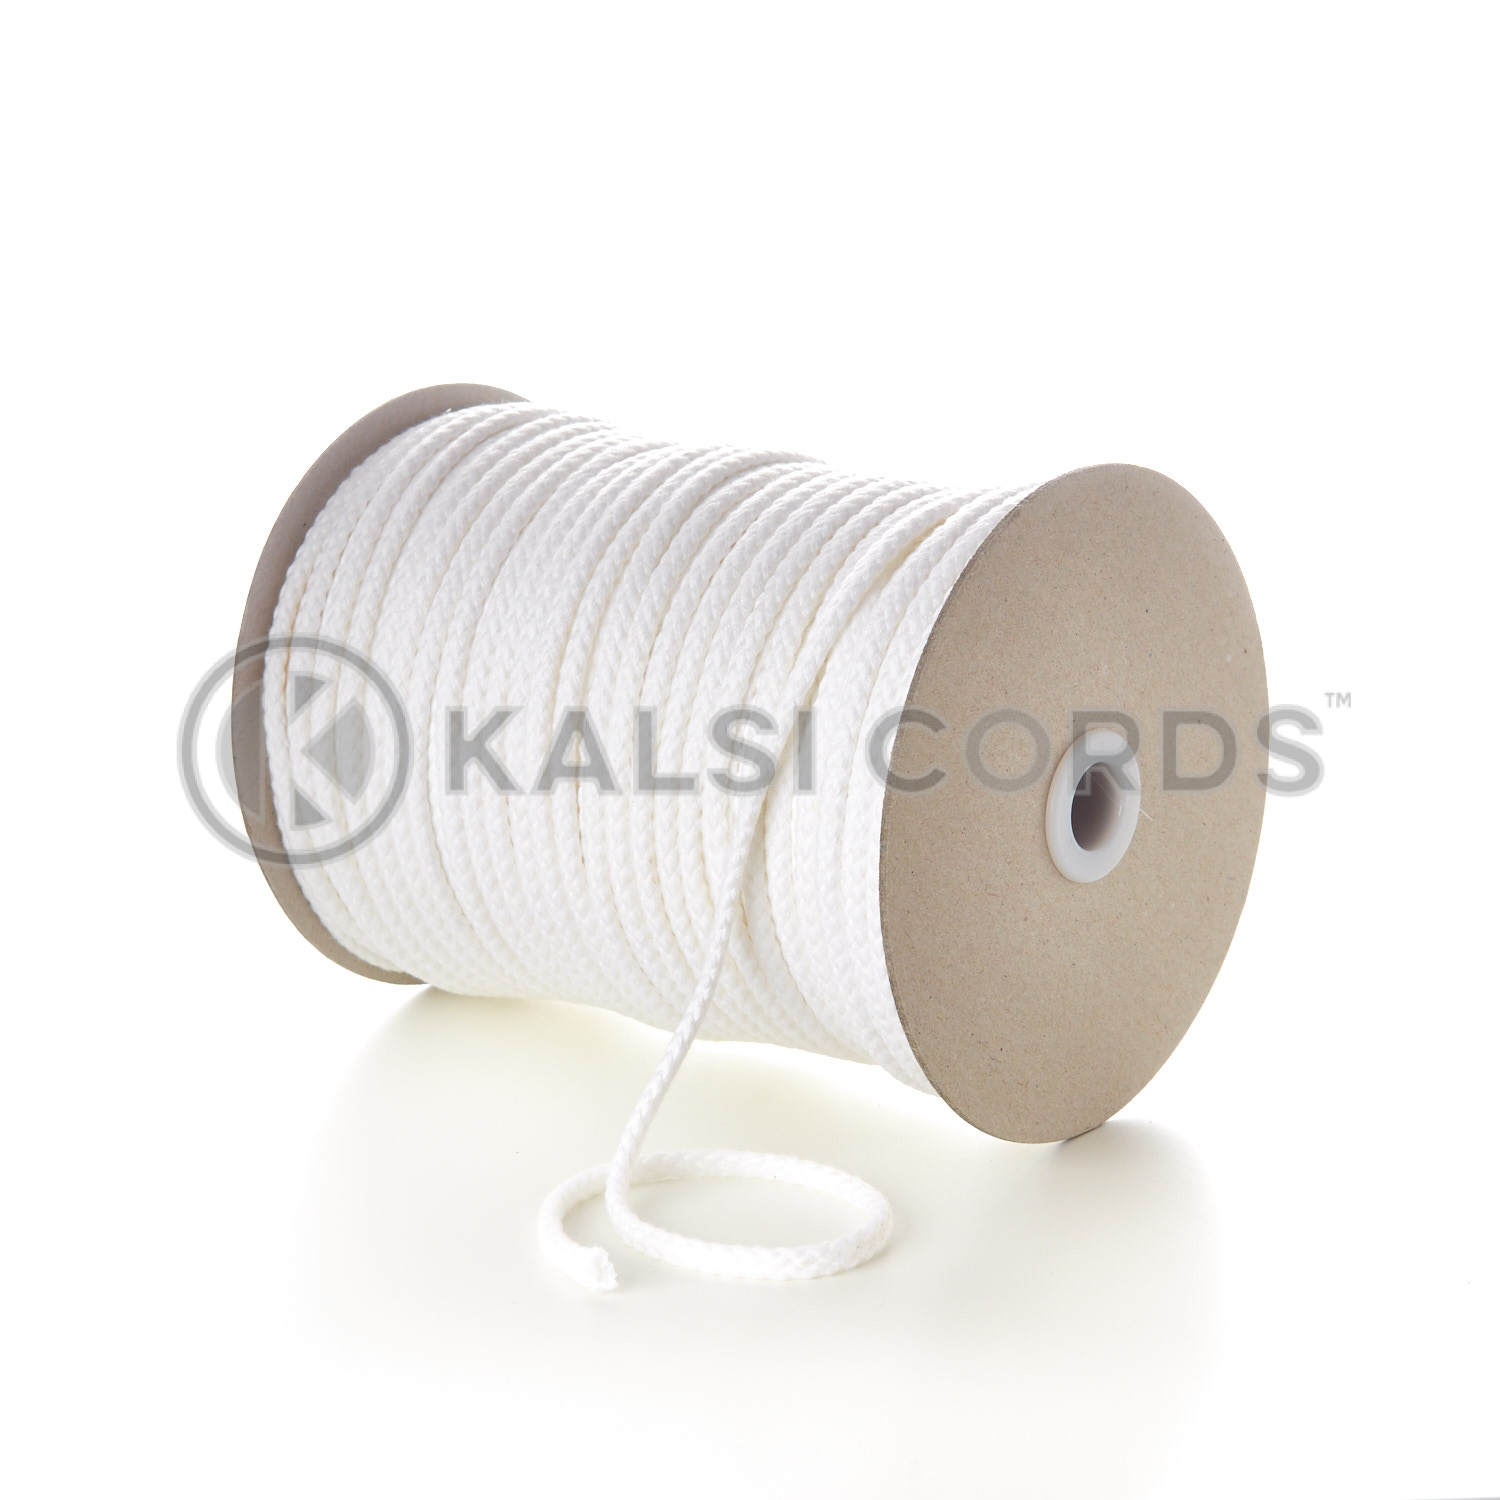 White 7mm Round Cotton Cord Braided String Drawcord Drawstring C213 Kalsi Cords